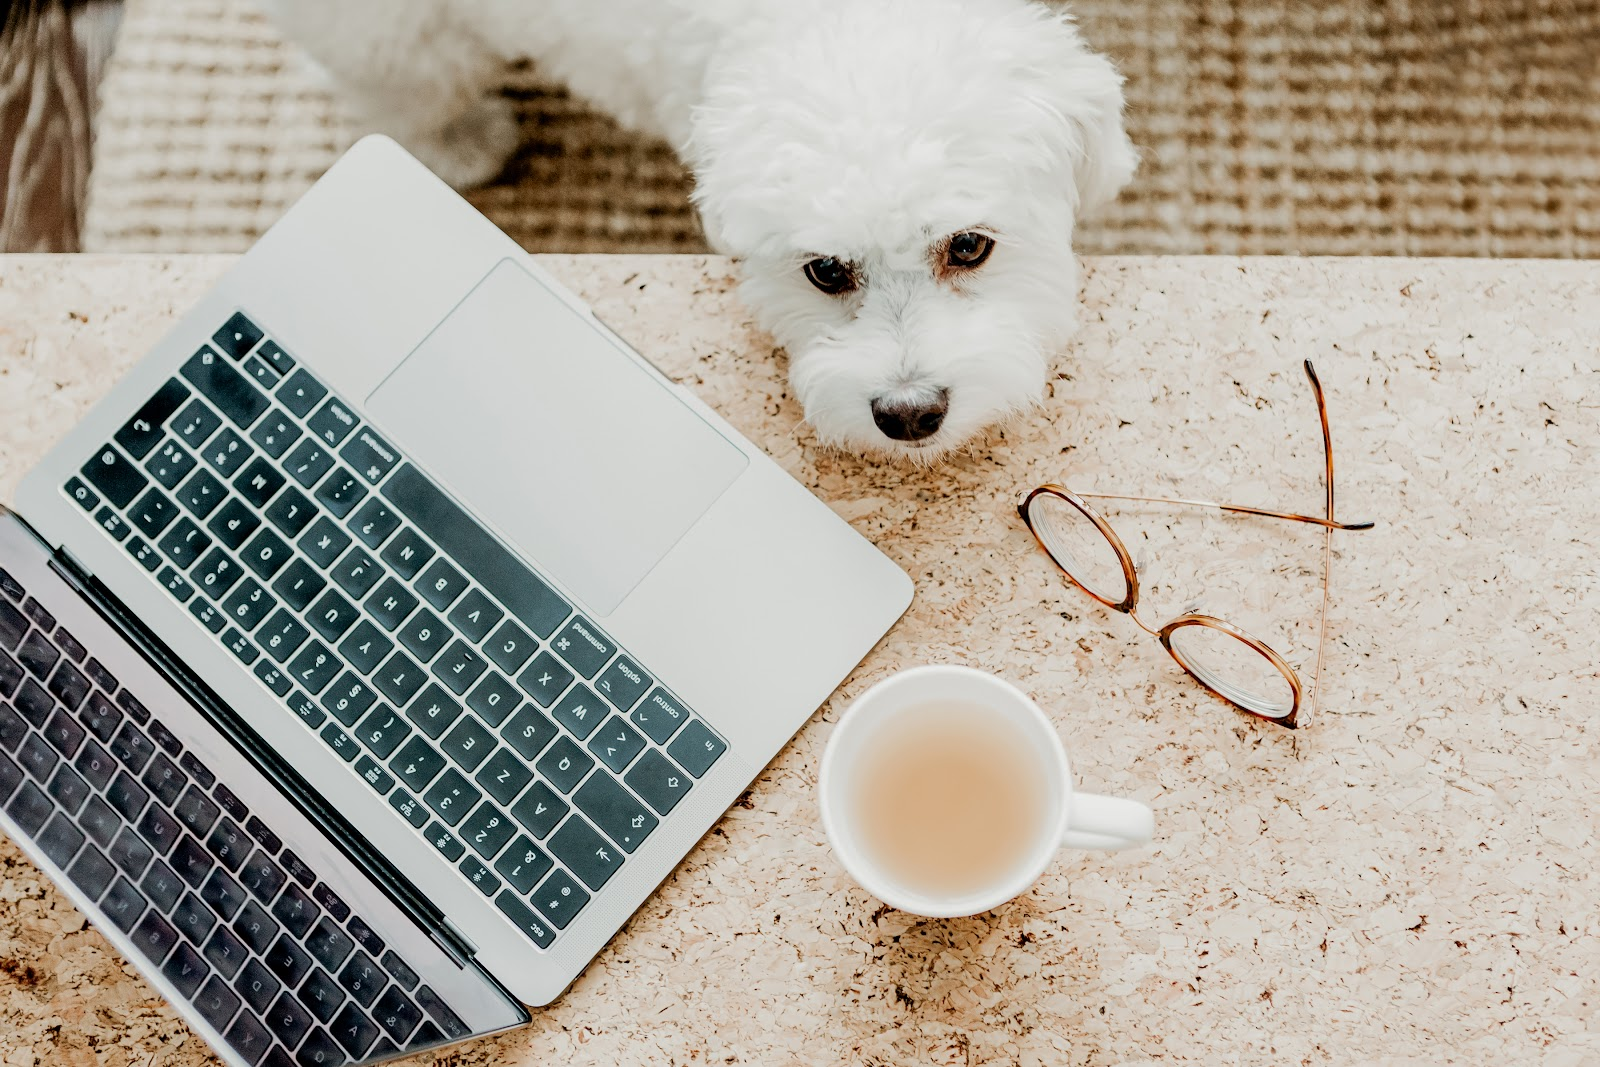 Need to work from home and thinking about freelancing online? Here are 5 simple steps you can take to start a freelancing side-hustle online!